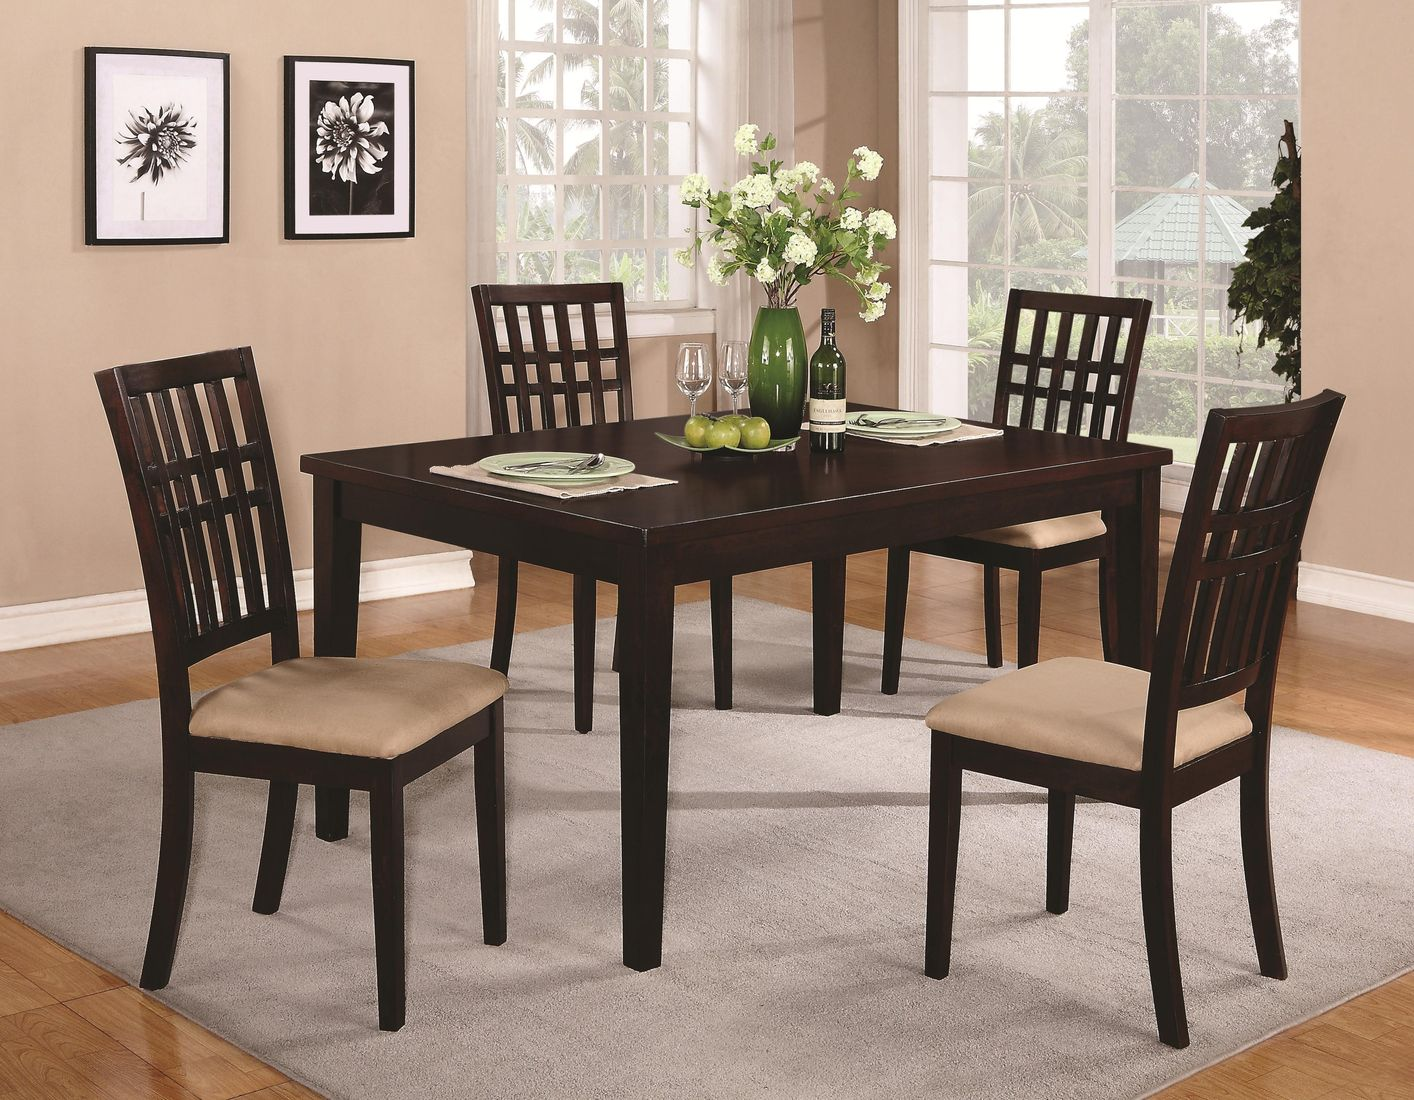 Dark Wood Dining Room Chairs table and chairs for sale tags classy dark wood dining room set Brandt Dark Cherry Wood Dining Table